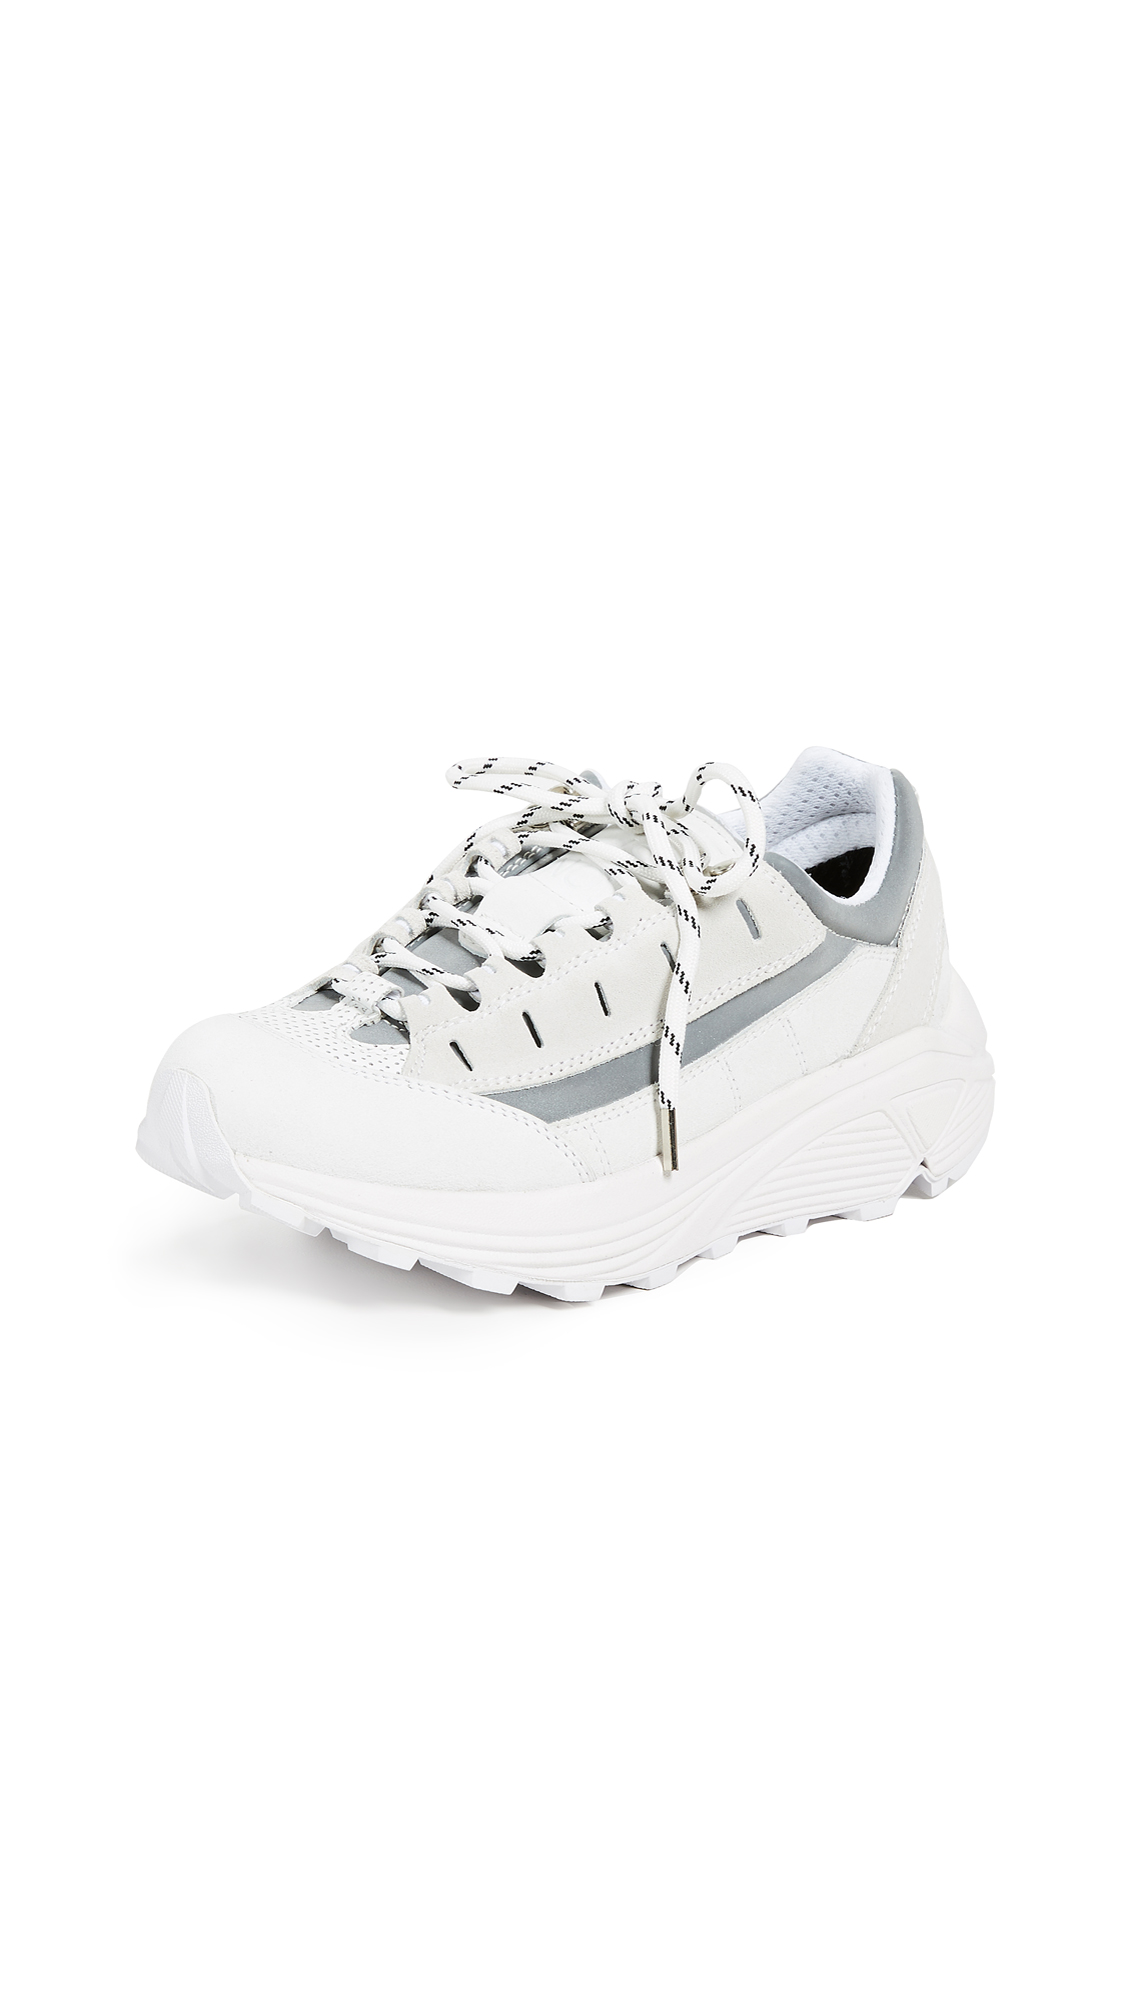 Ganni Iris Sneakers - Bright White